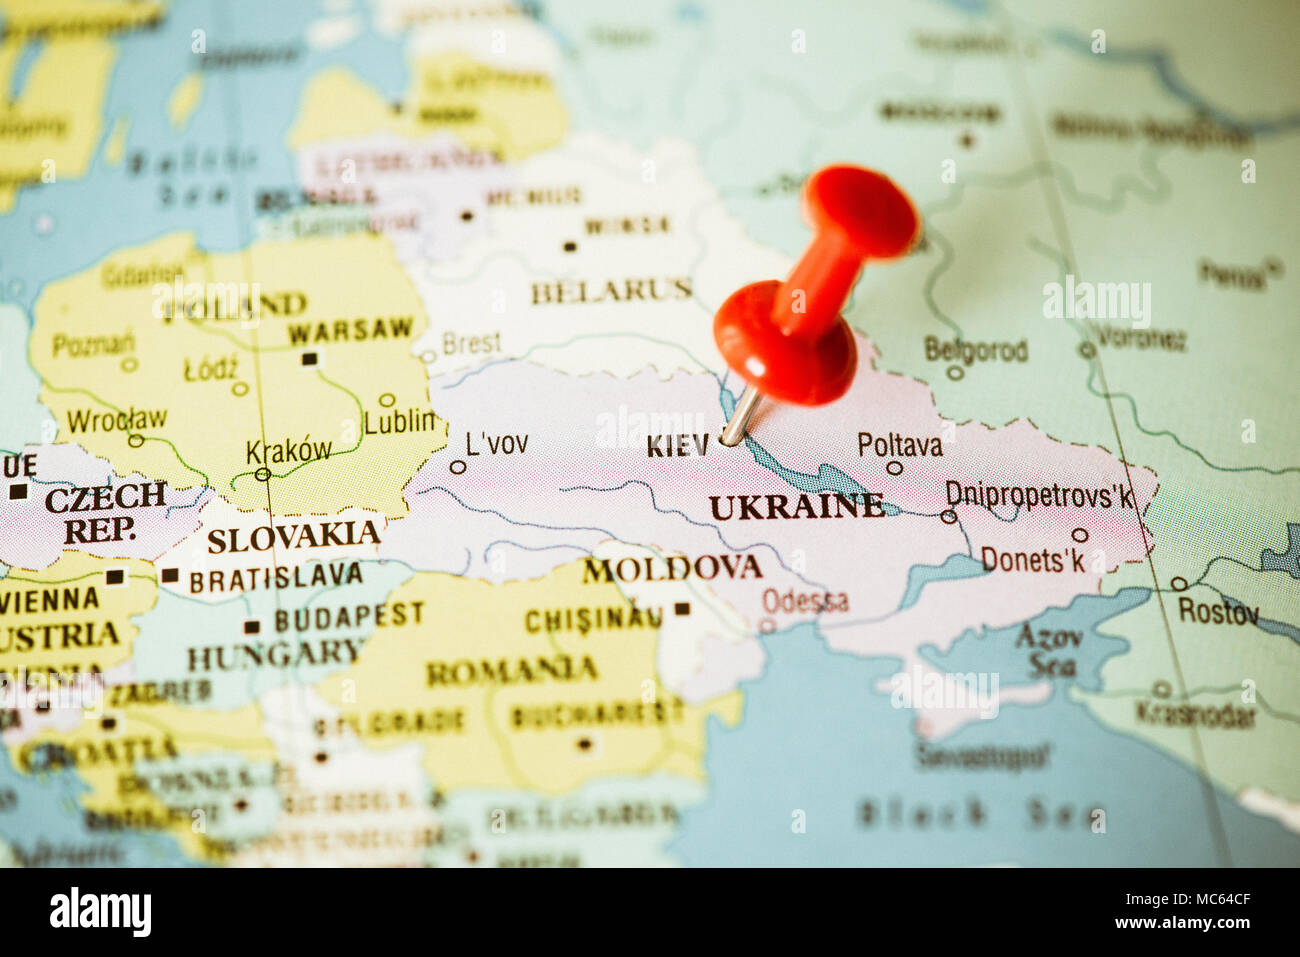 Ukraine and East Europe political map, red pin on Kiev Stock Photo ...